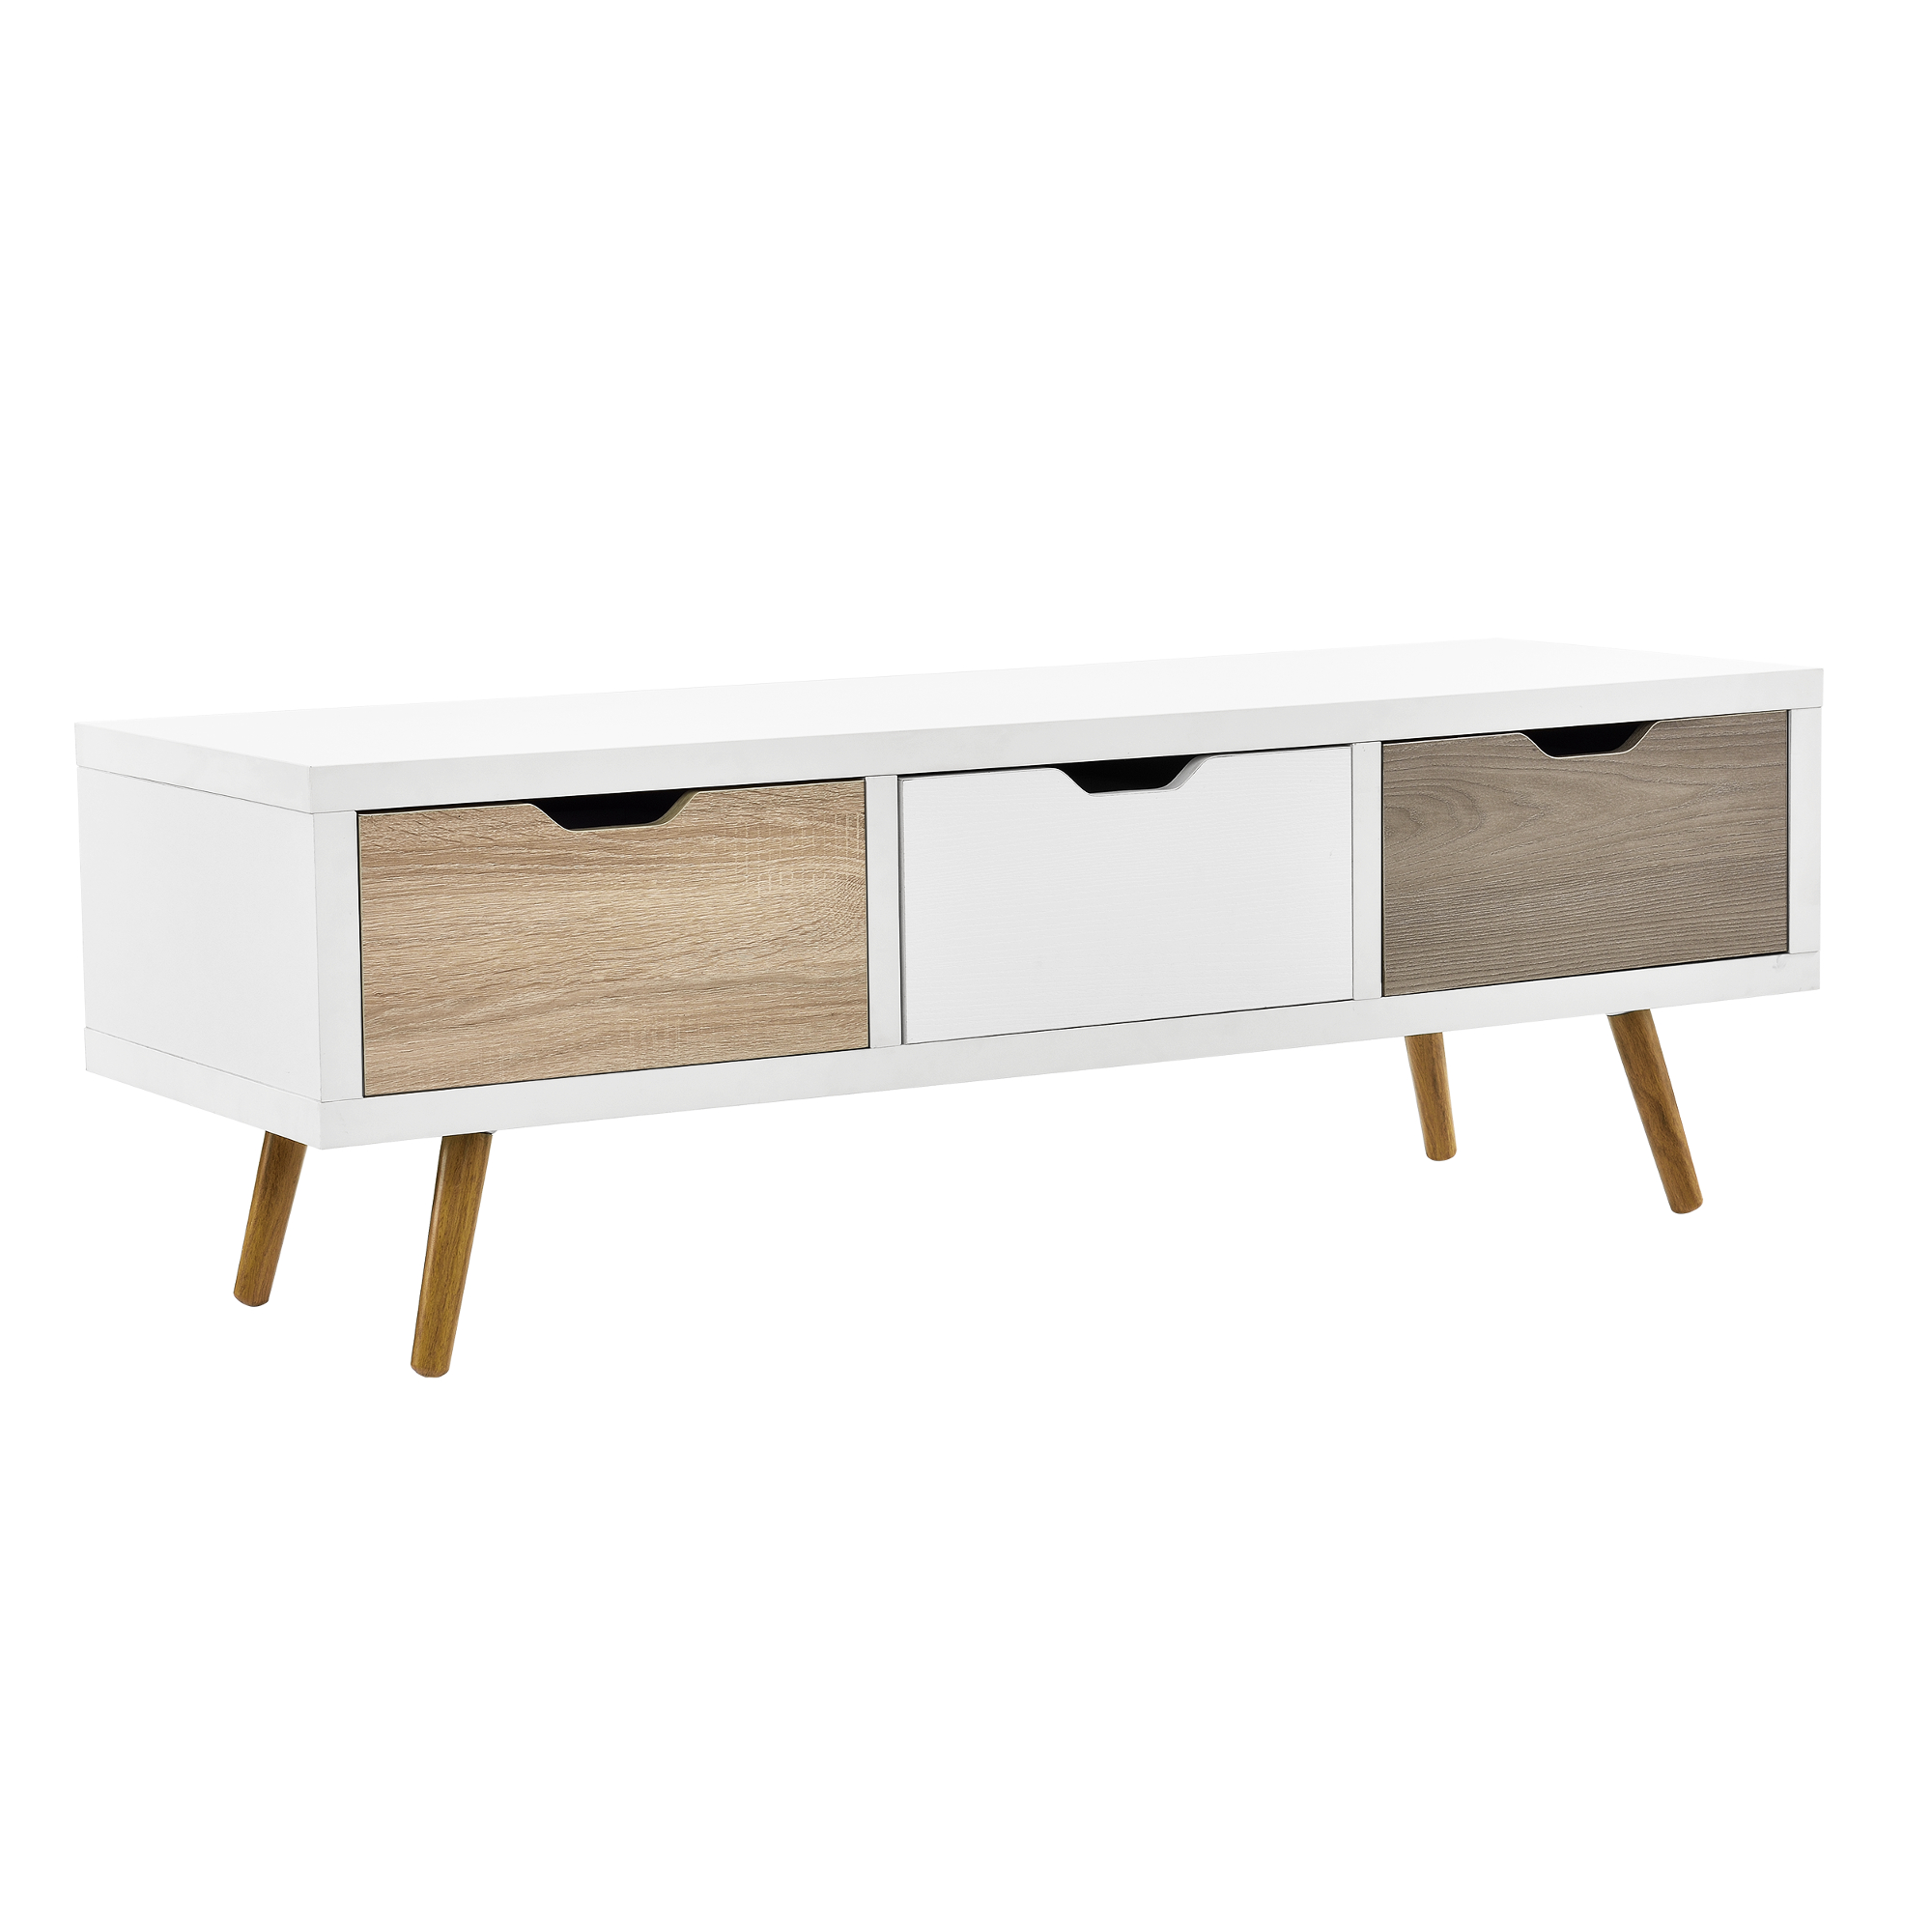 design tv lowboard wei fernsehtisch konsole kommode schrank sideboard ebay. Black Bedroom Furniture Sets. Home Design Ideas